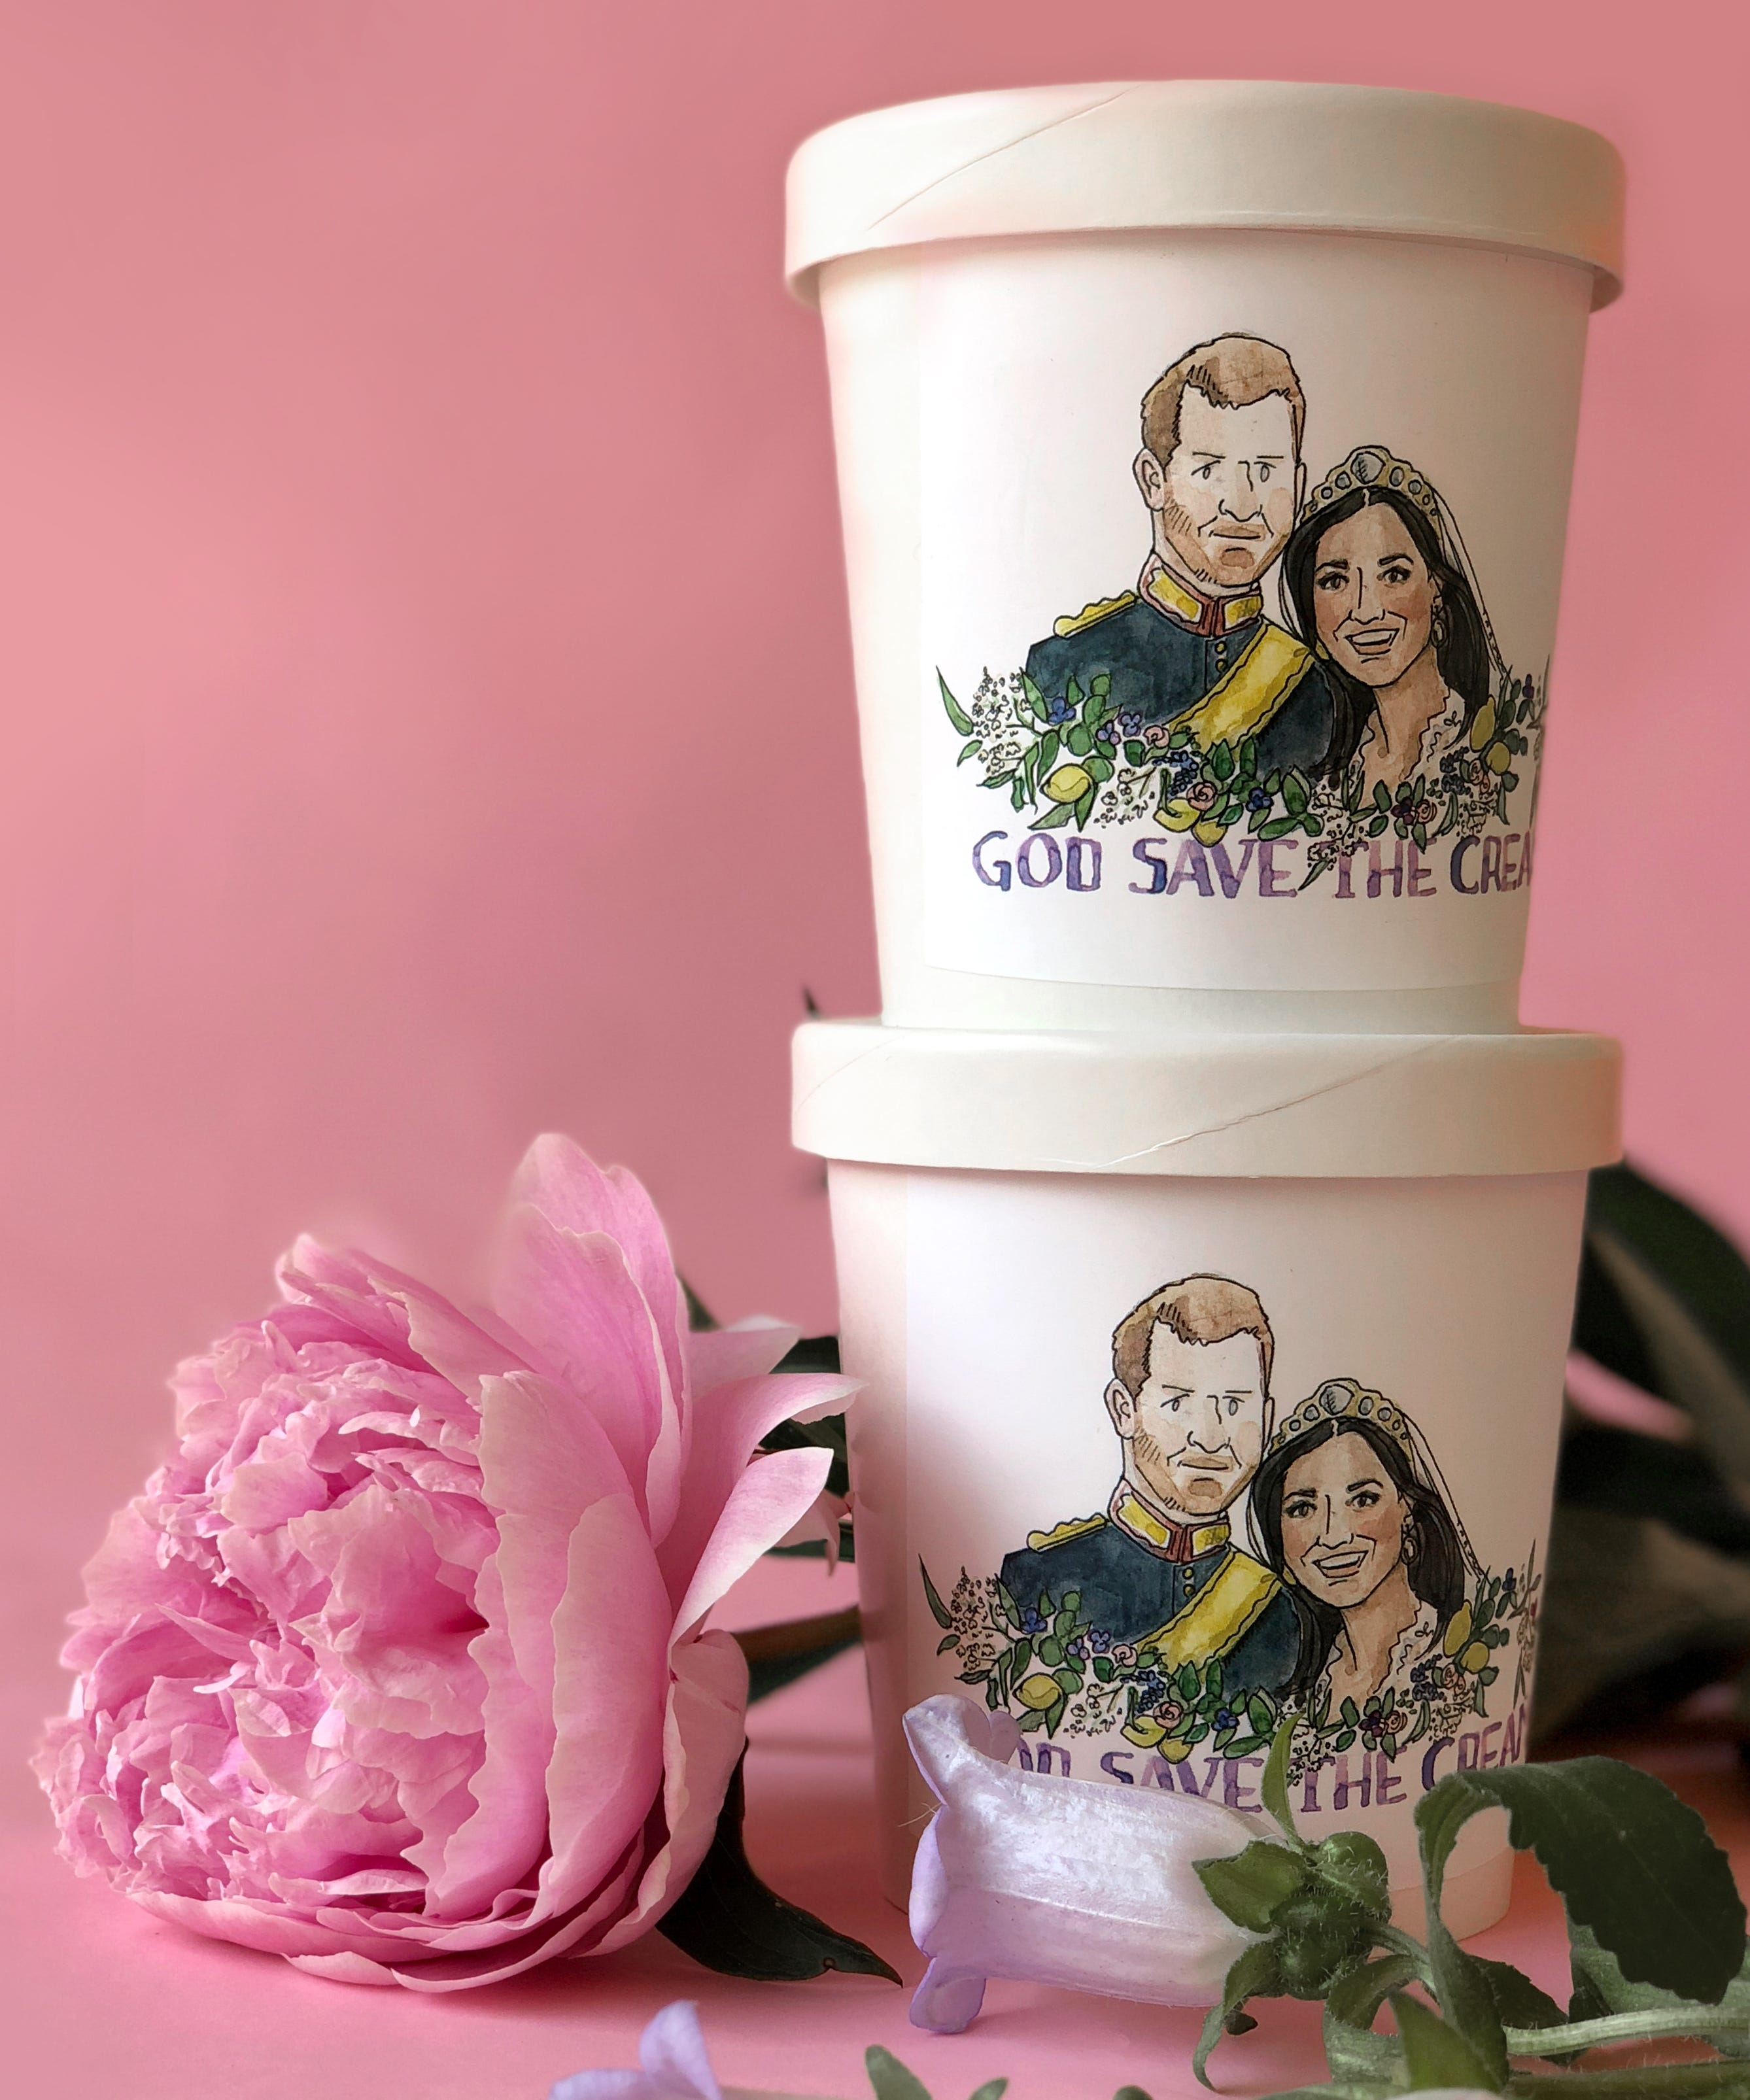 Royal Wedding Themed Desserts - Cupcakes, Donuts To Buy